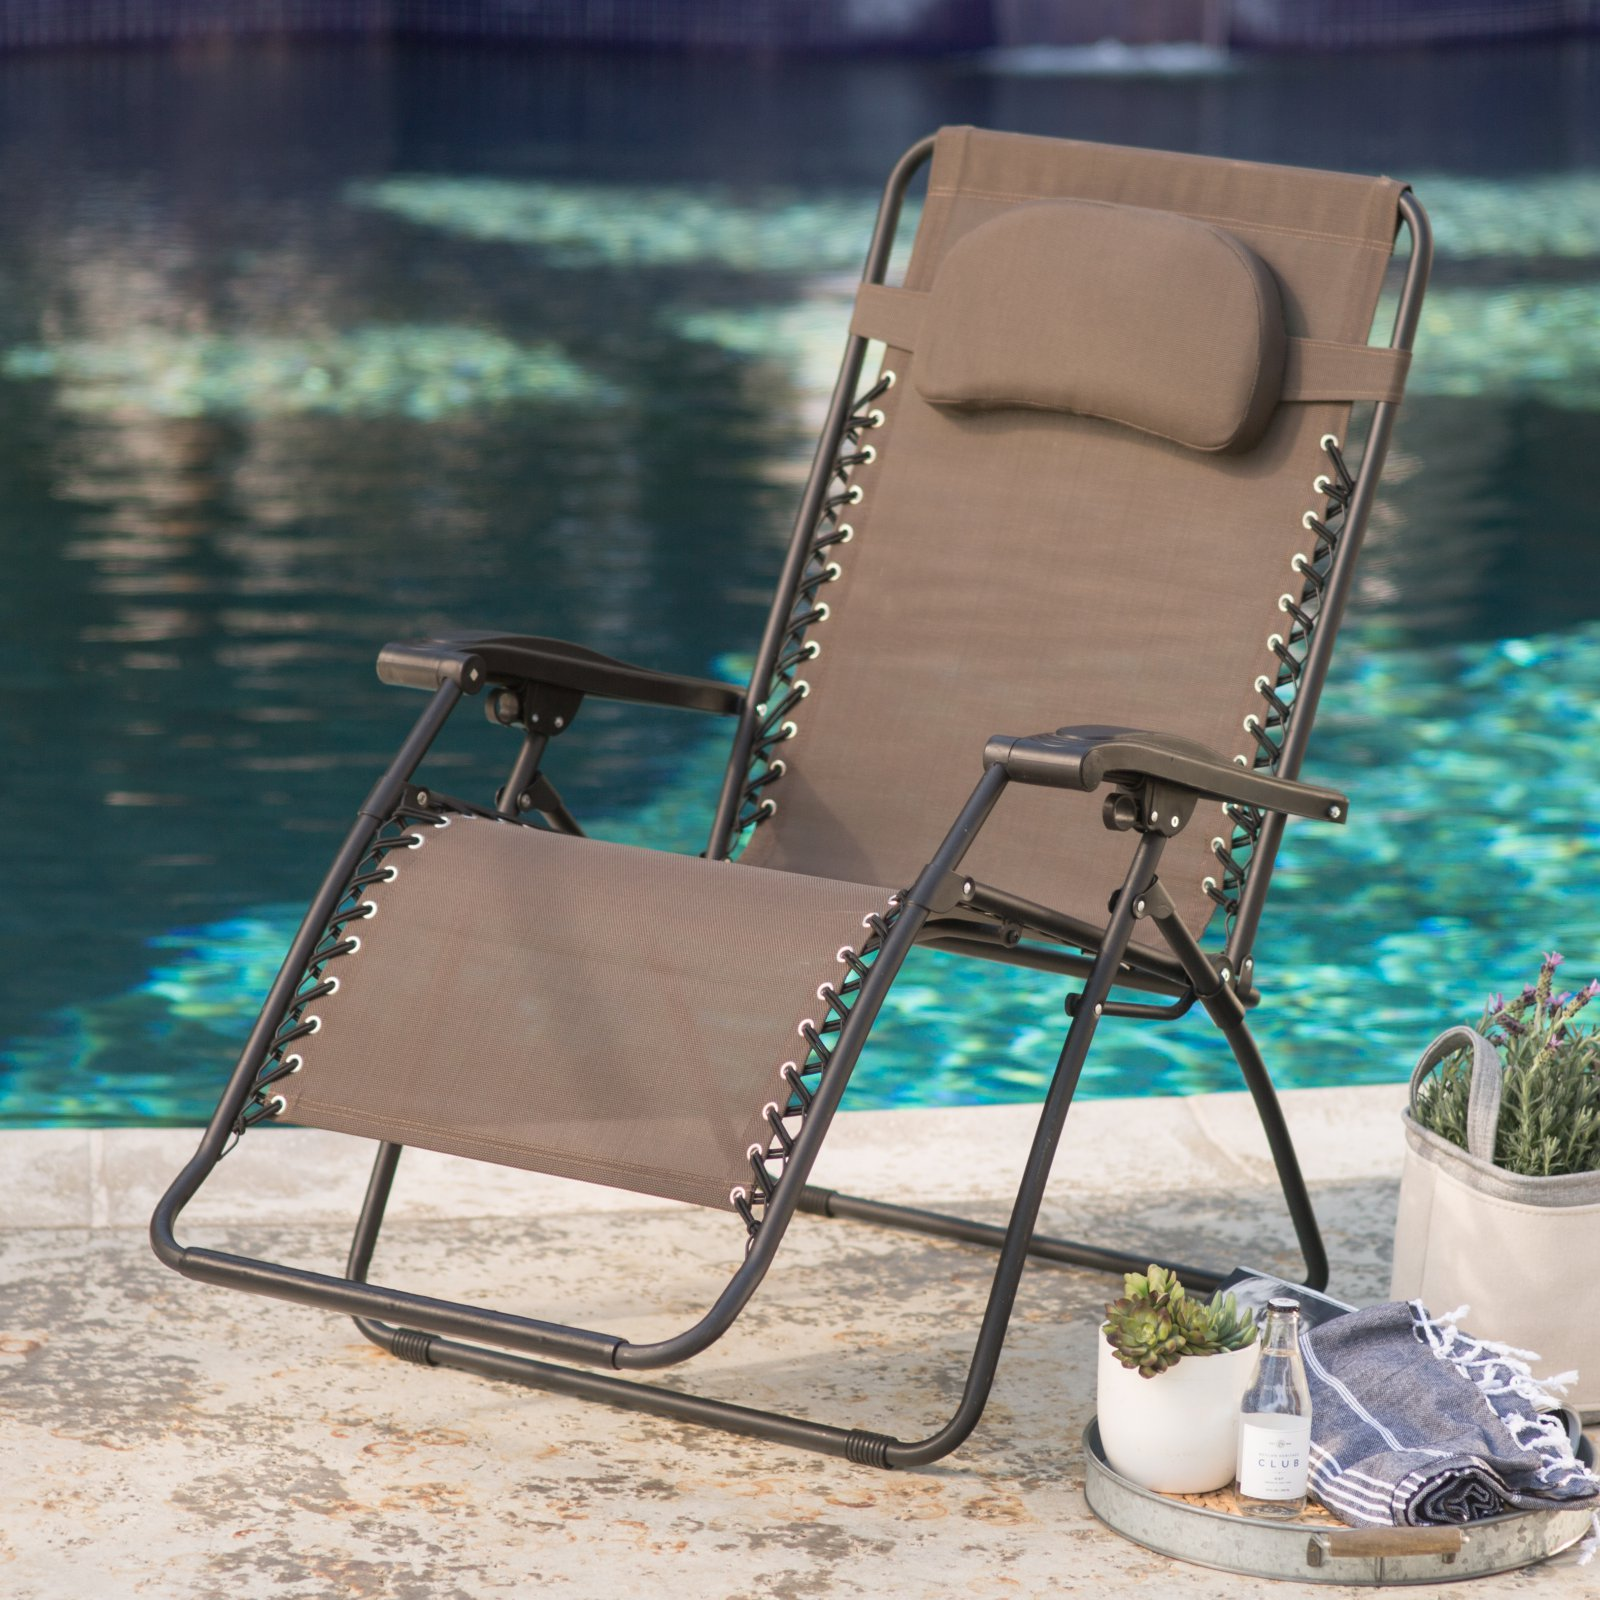 Caravan Global Sports Oversized Zero Gravity Chair